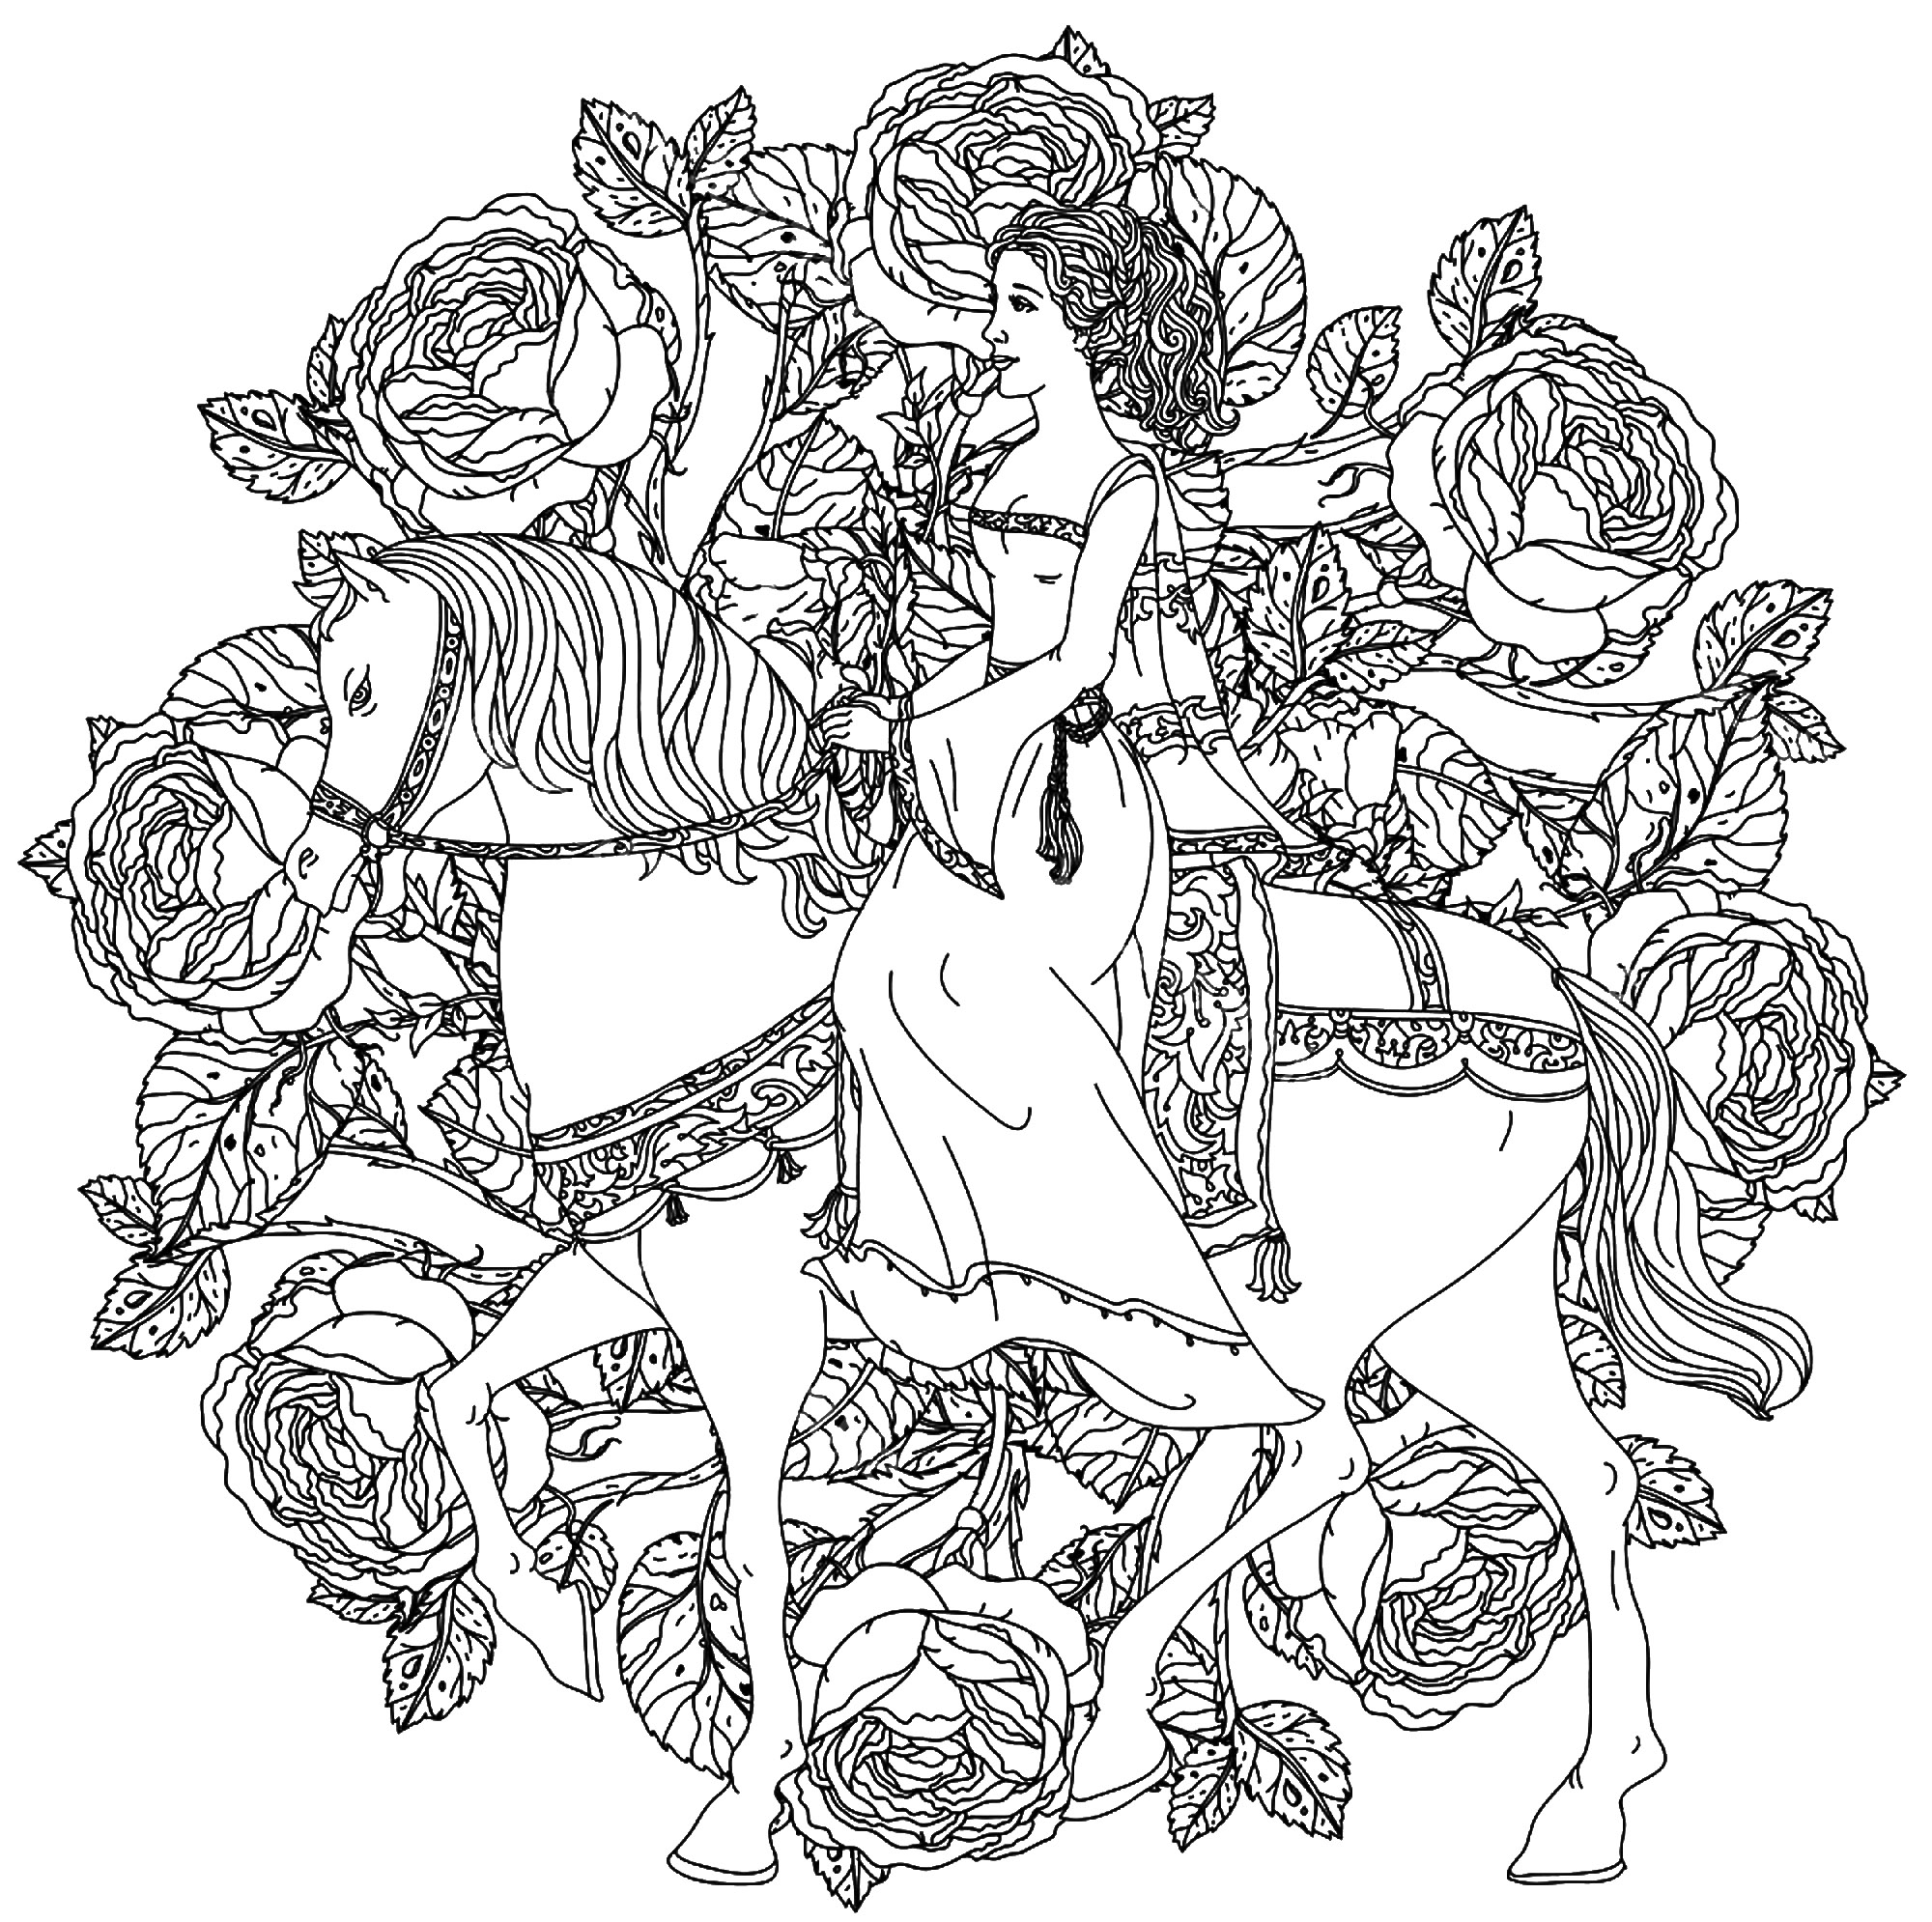 princess on horse coloring pages princess horse coloring pages coloring home horse princess on pages coloring